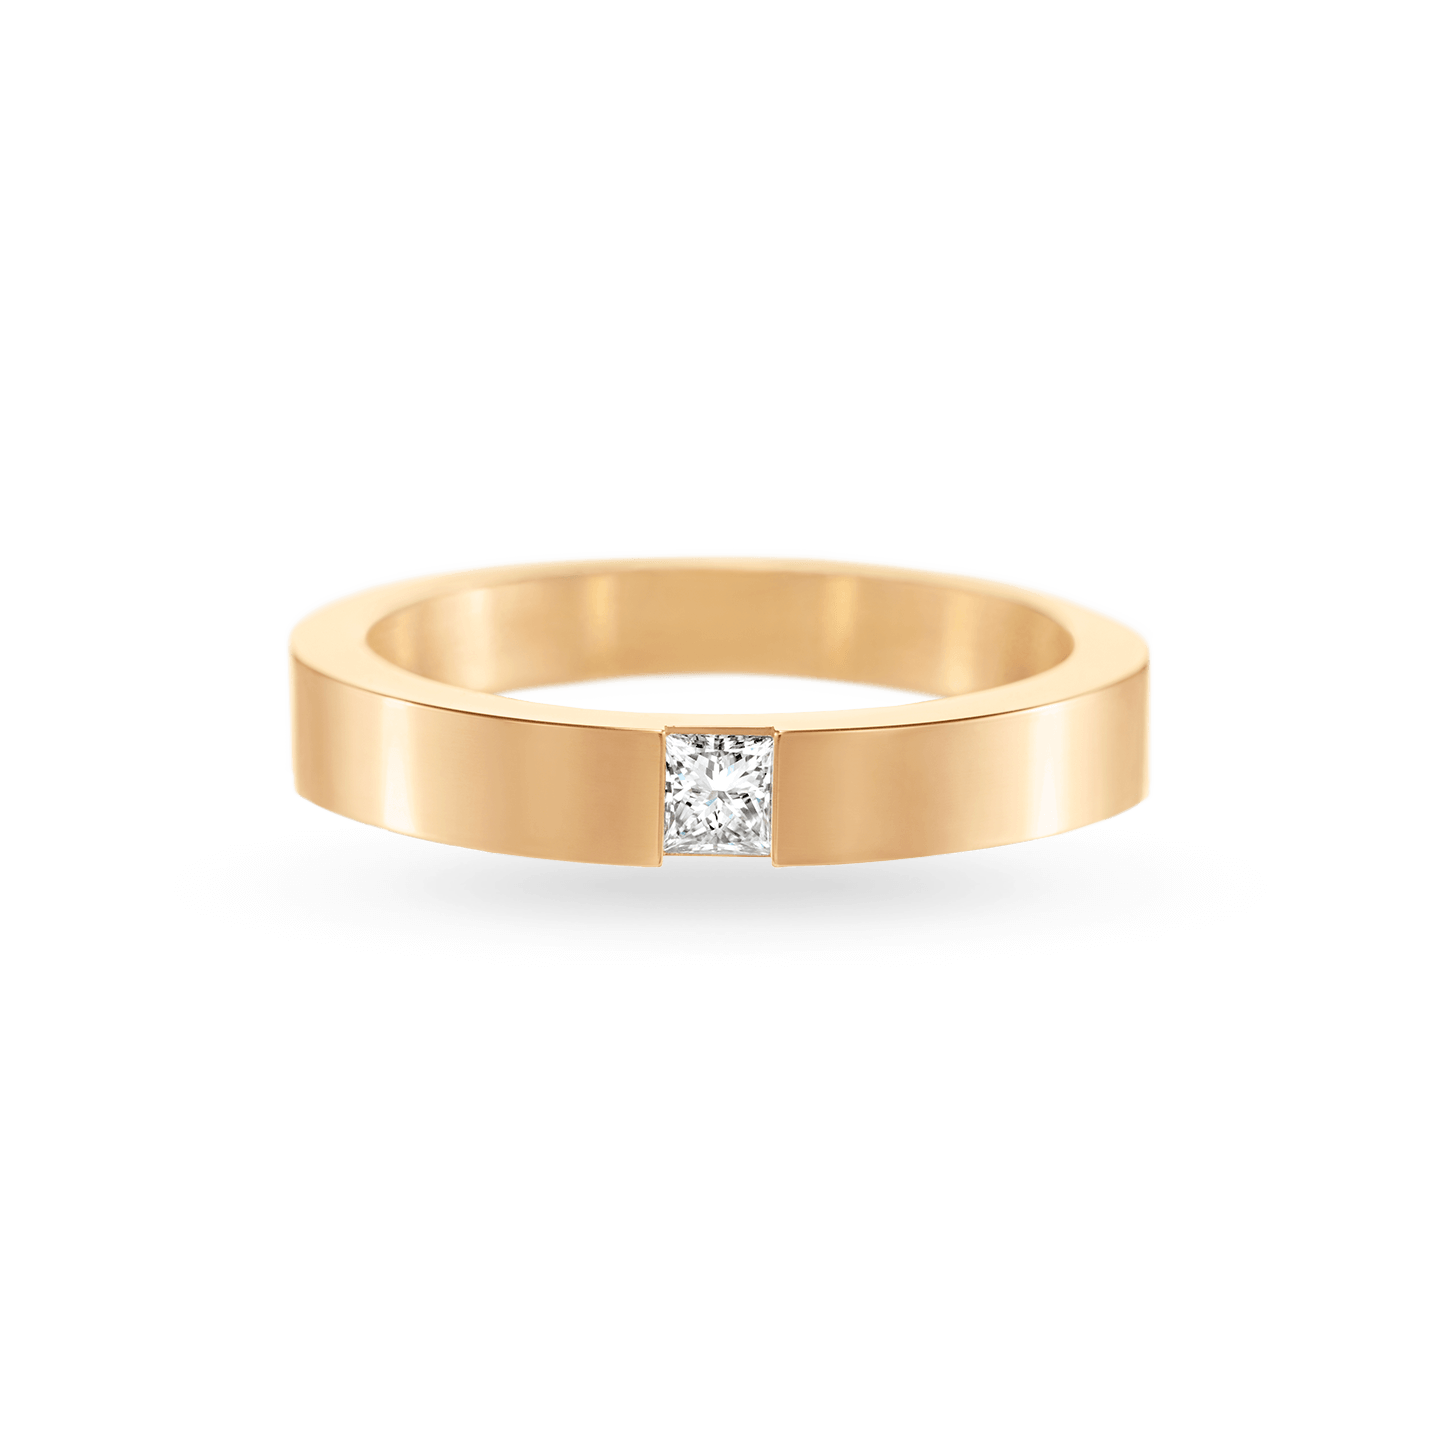 Princess-Cut Single Diamond Wedding Band in Yellow Gold, Product Image 1